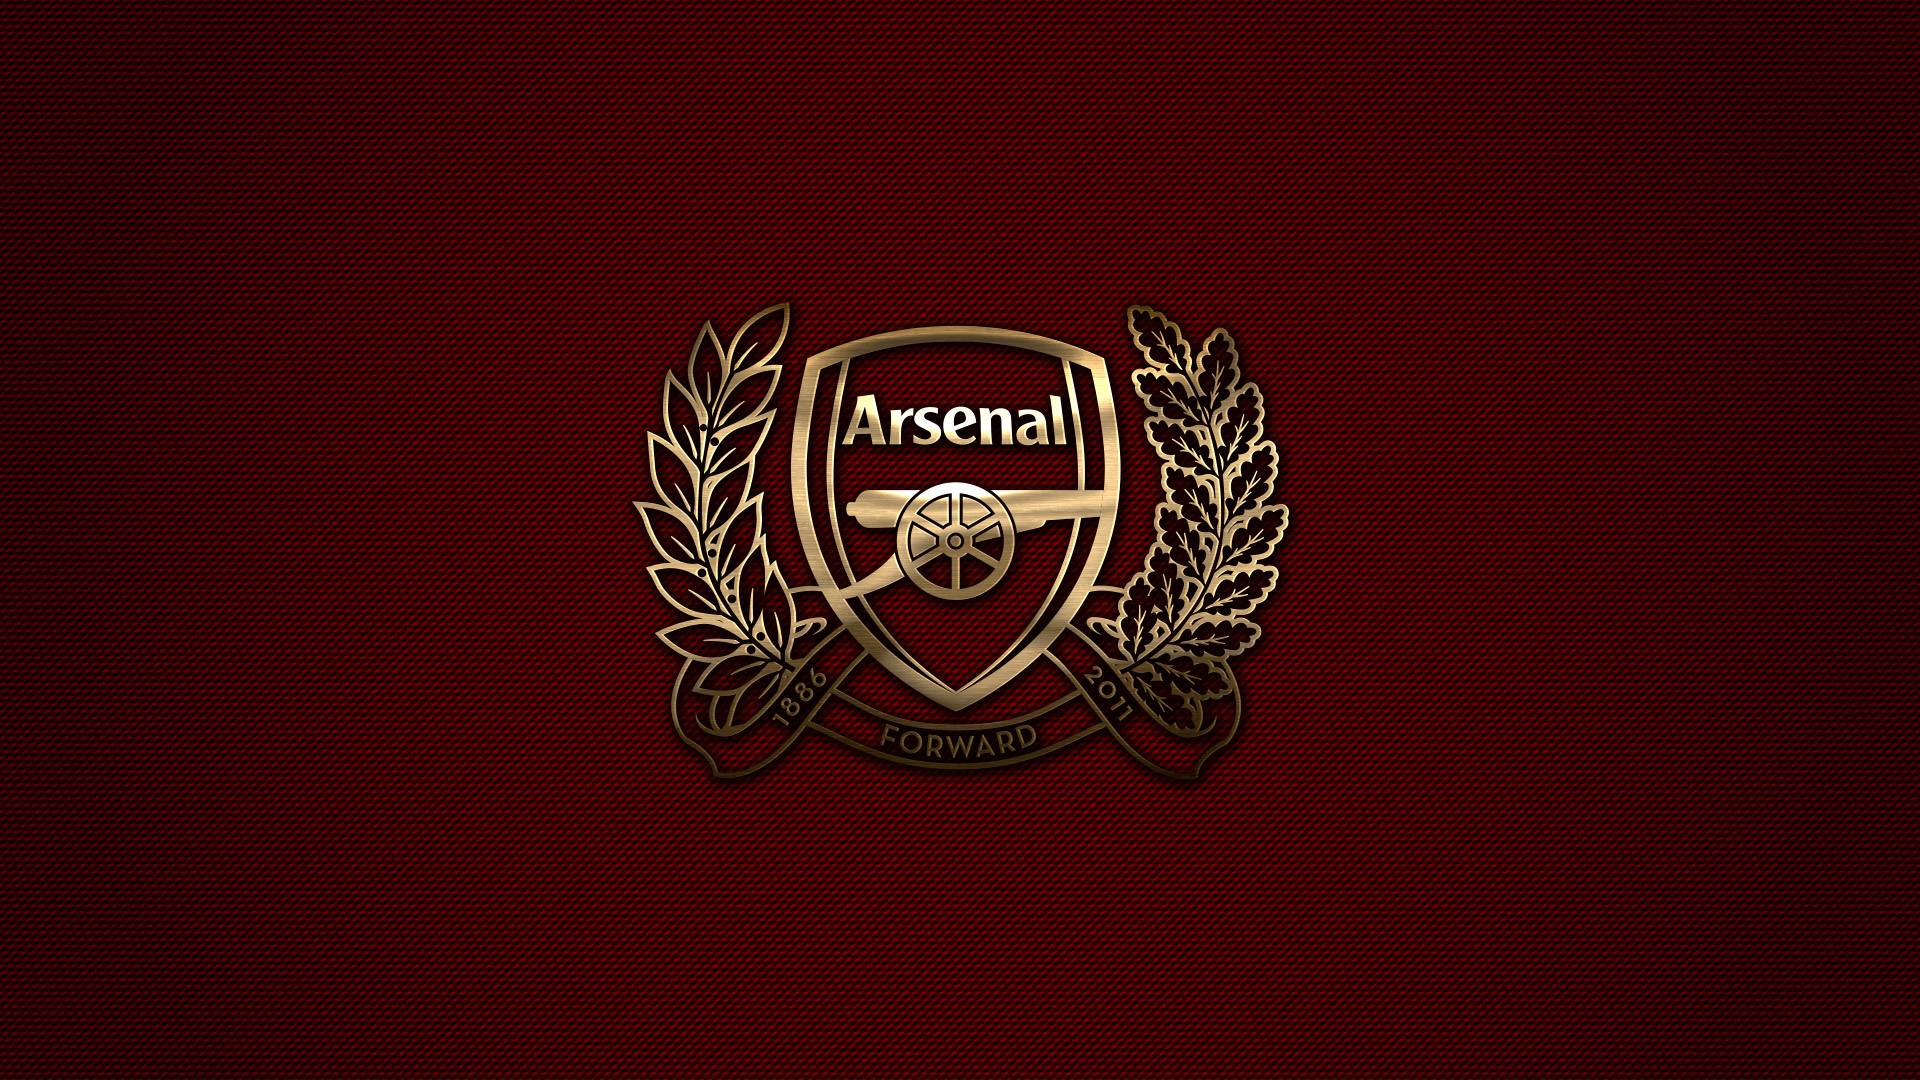 Arsenal Anniversary Wallpaper HD #12191 Wallpaper | Wallpaper ...